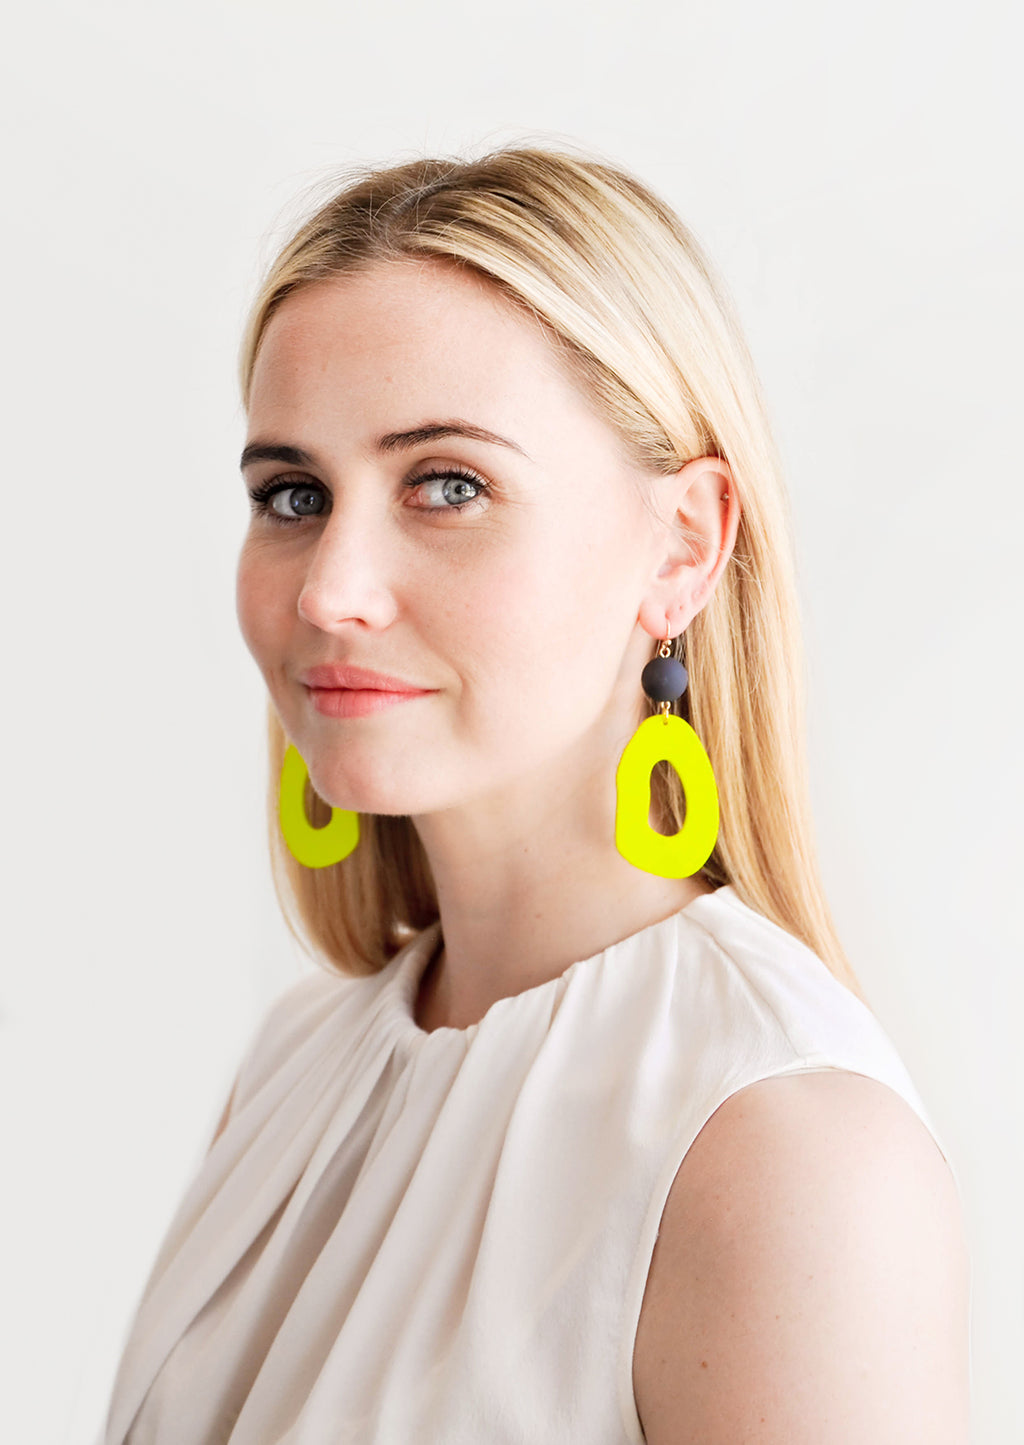 Henri Cutout Earrings